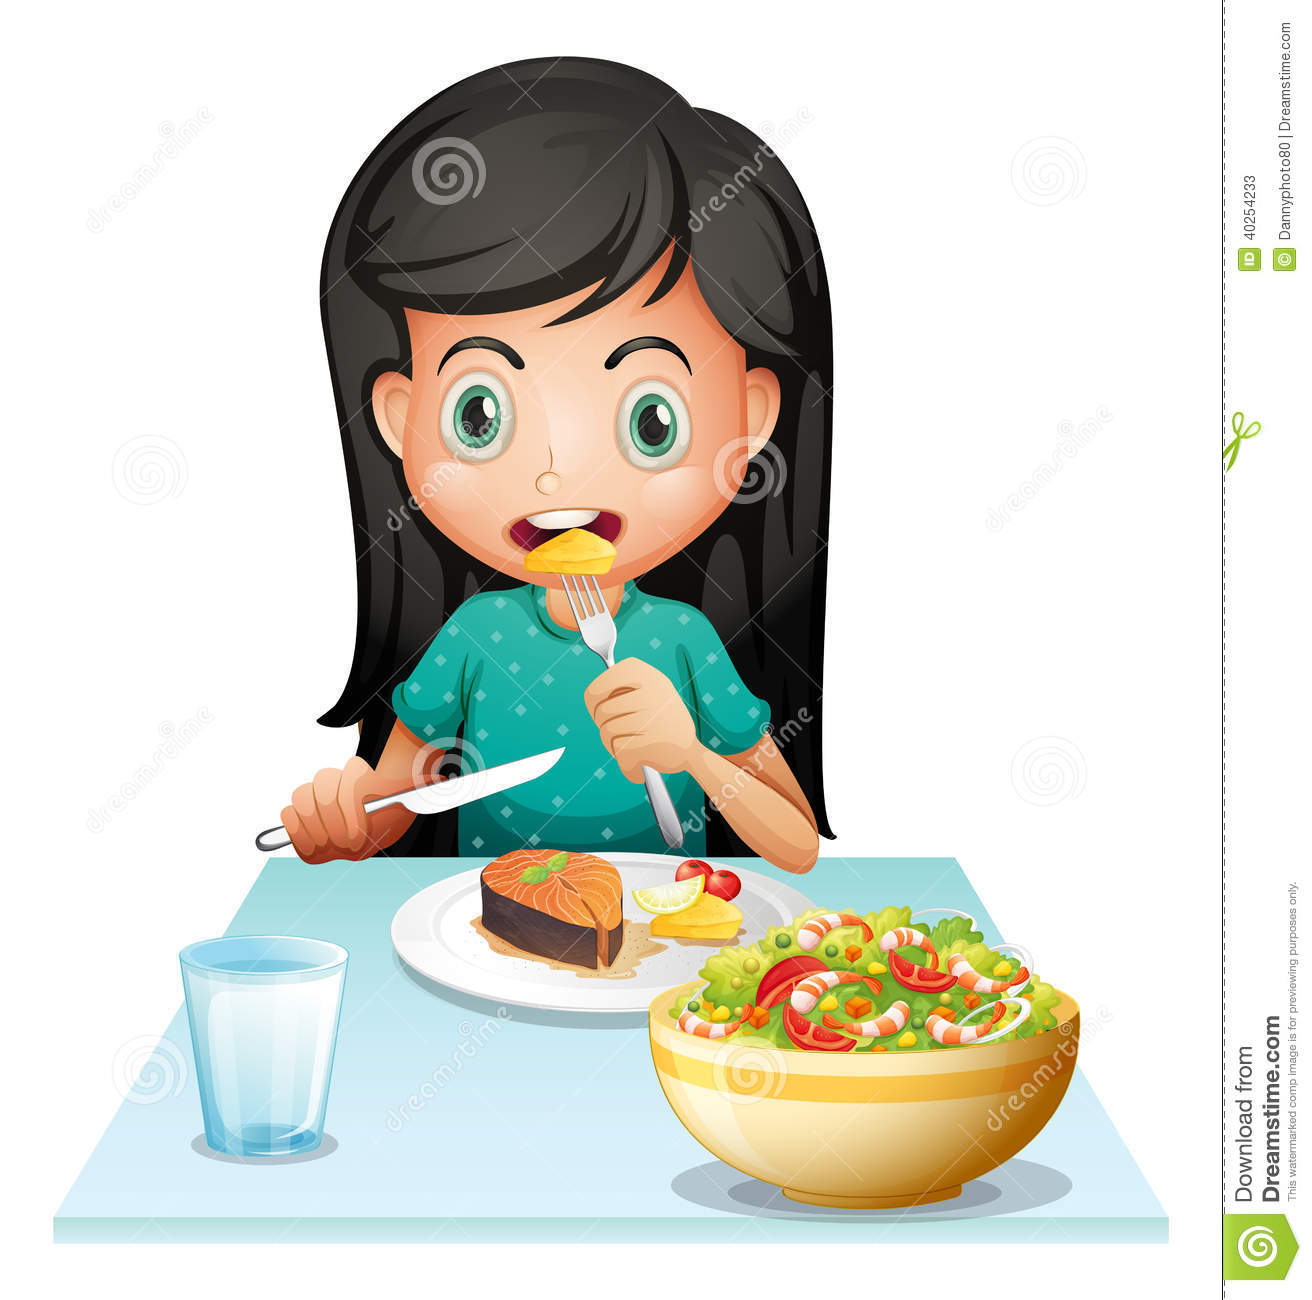 Illustration Of A Girl Eating Her Lunch On A White Background